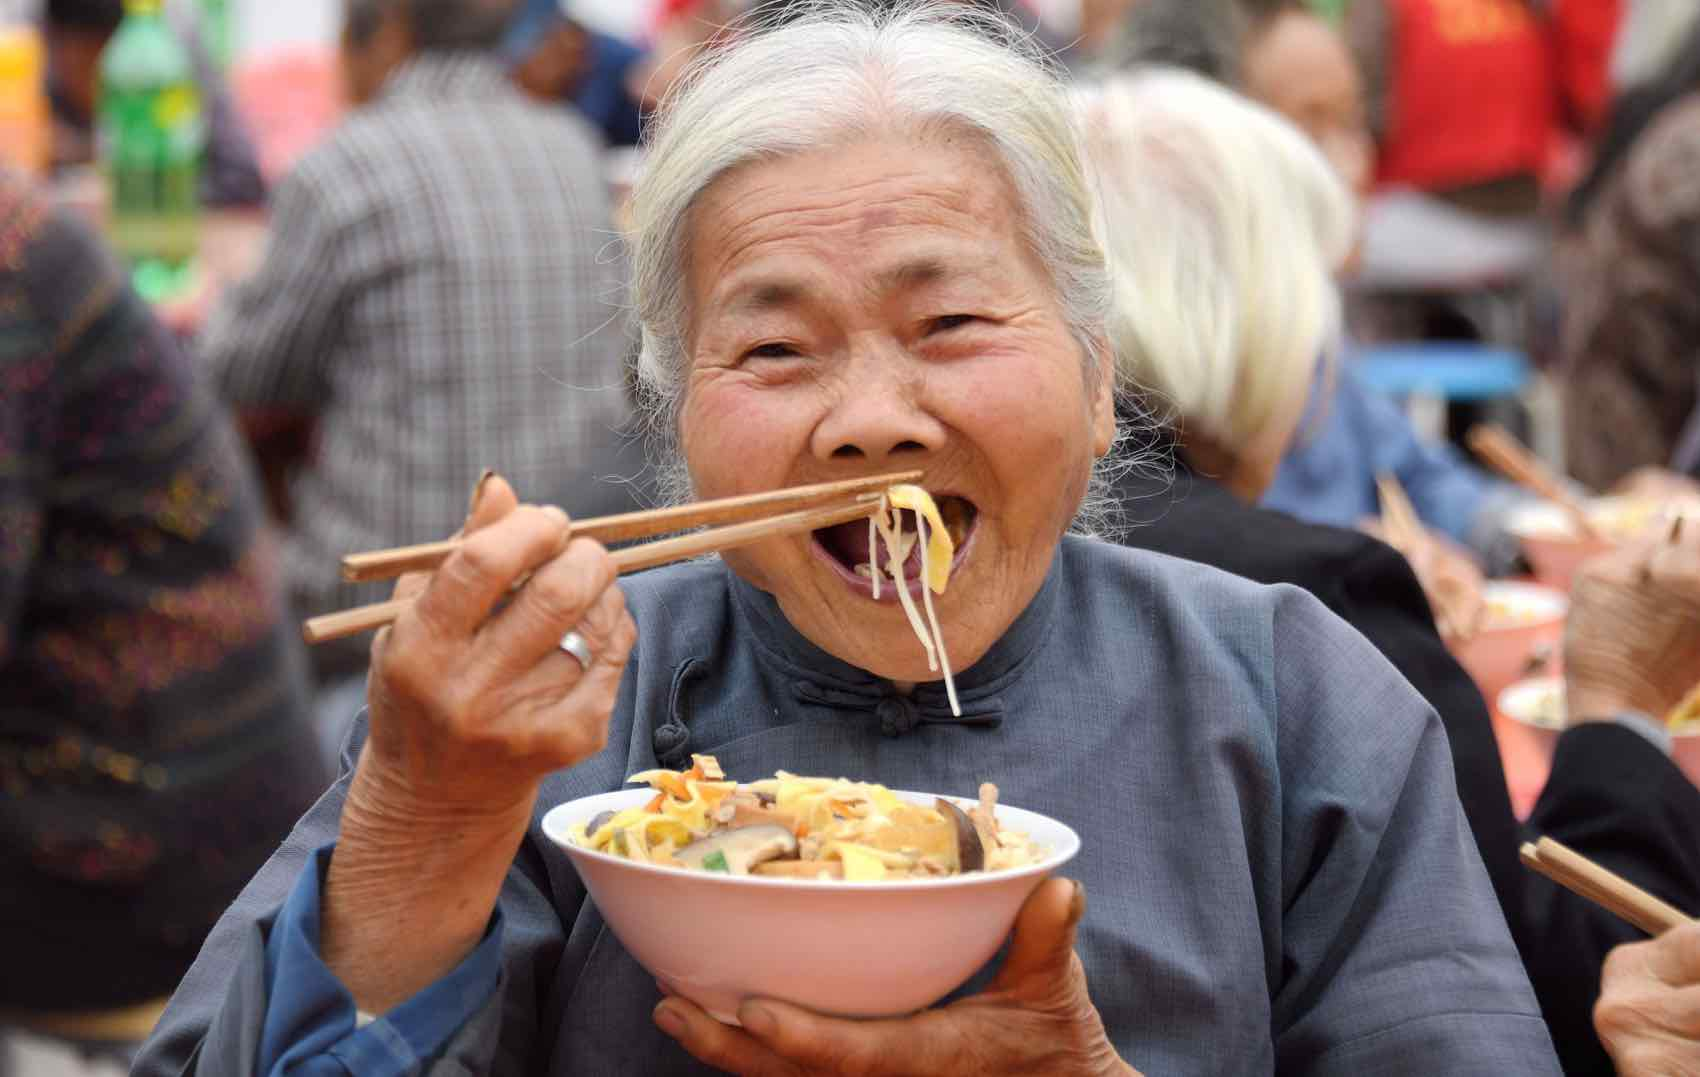 """Chinese celebrate """"Long Noodles"""" for a long life to come. And they are eating noodles"""